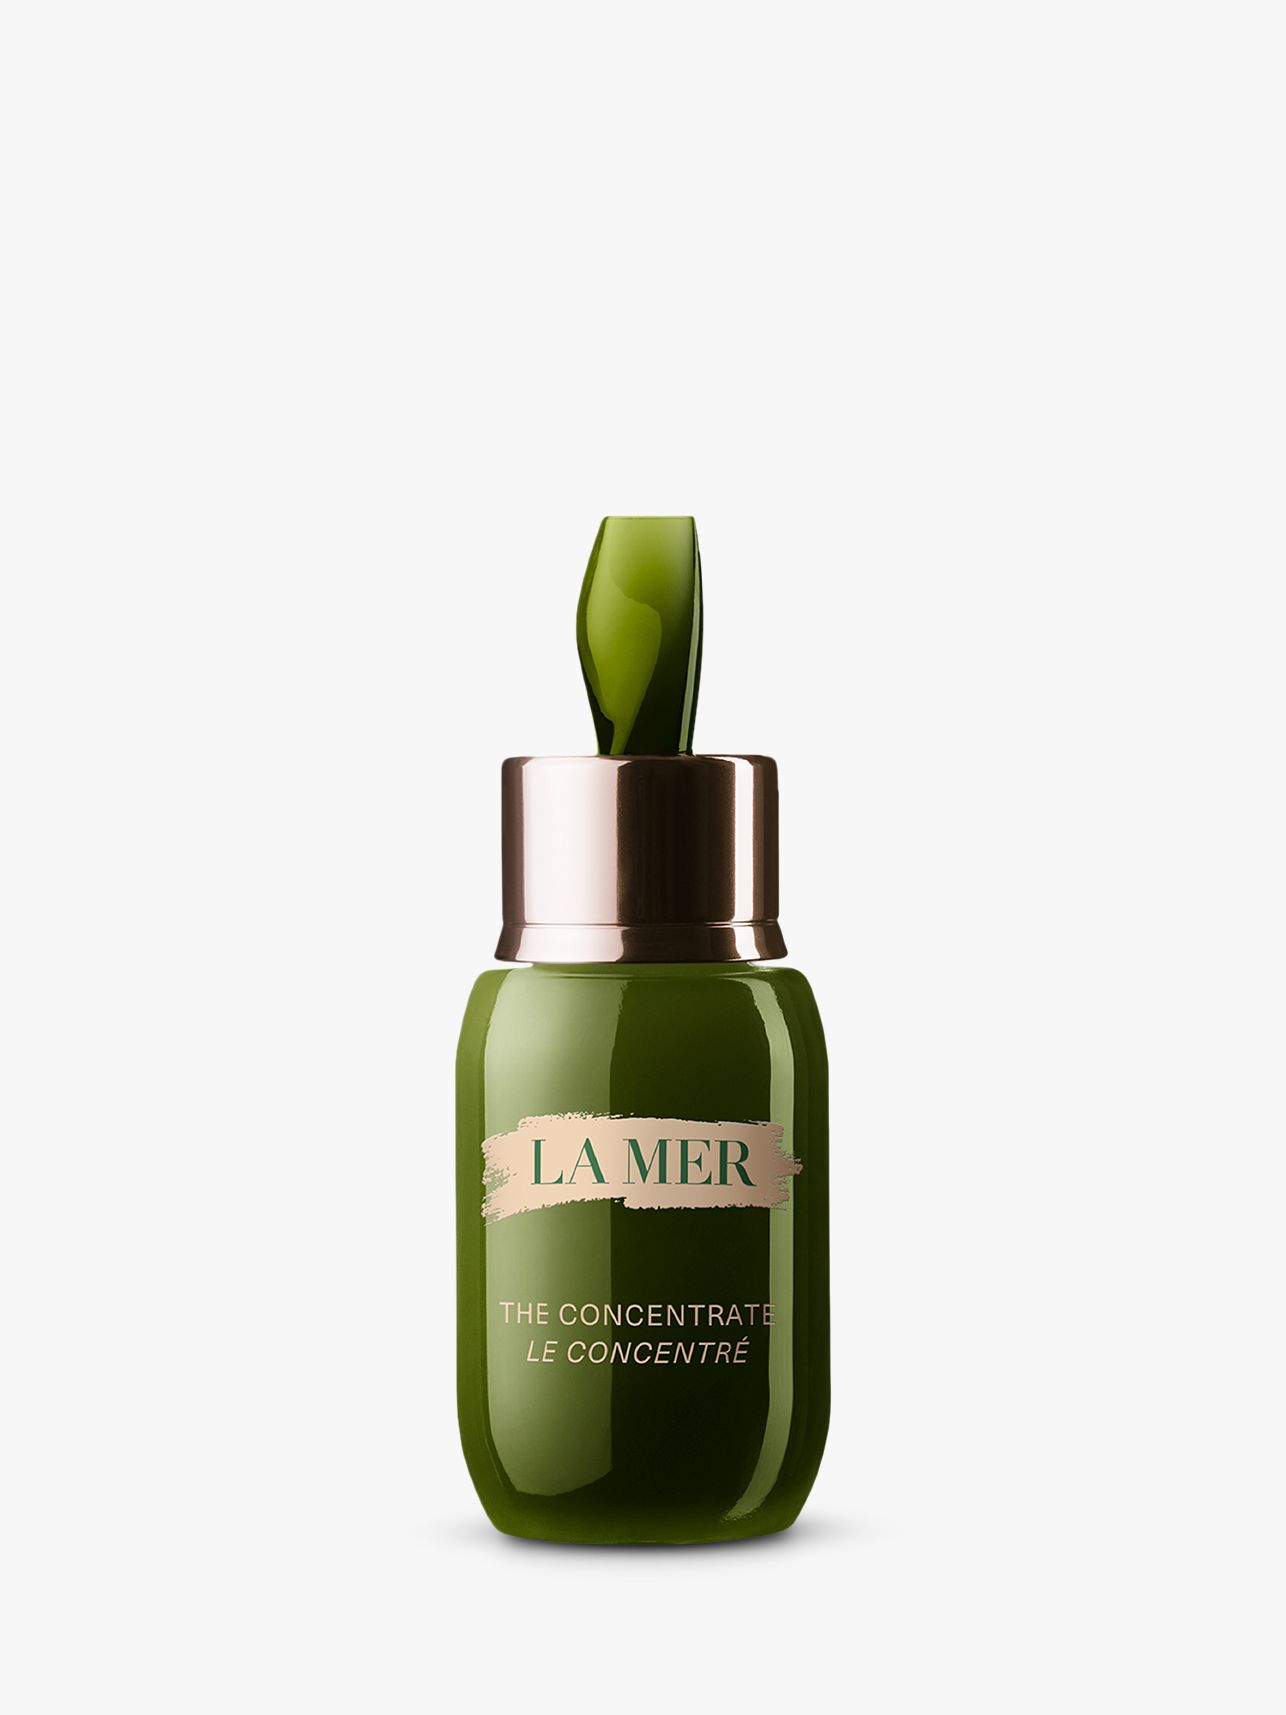 La Mer La Mer The Concentrate Facial Serum